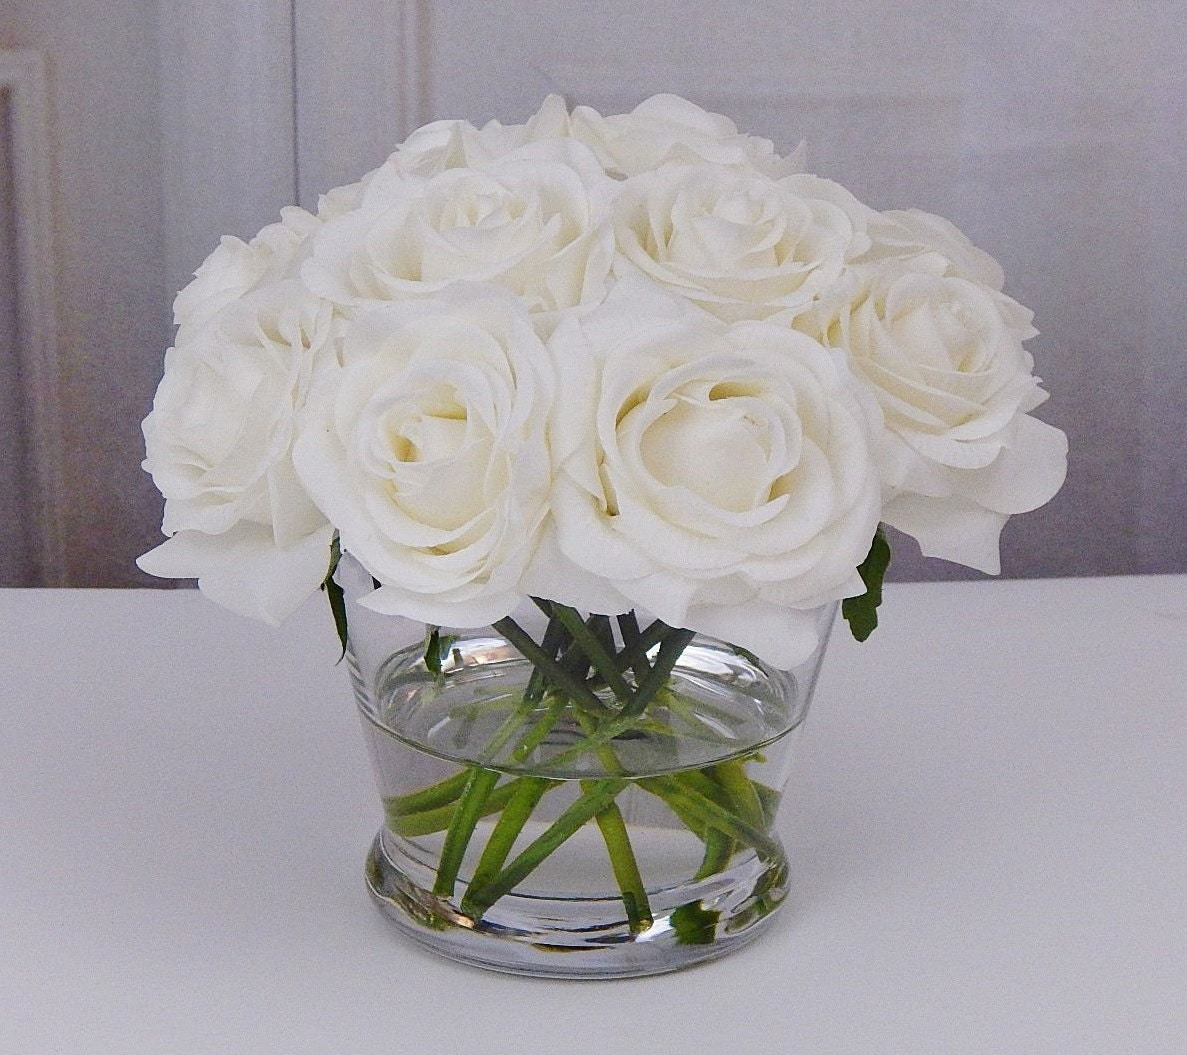 12 white or cream roseroses glass vase faux water acrylic 12 white or cream roseroses glass vase faux water acrylicillusion silk real touch flowers floral arrangement centerpiece decor reviewsmspy